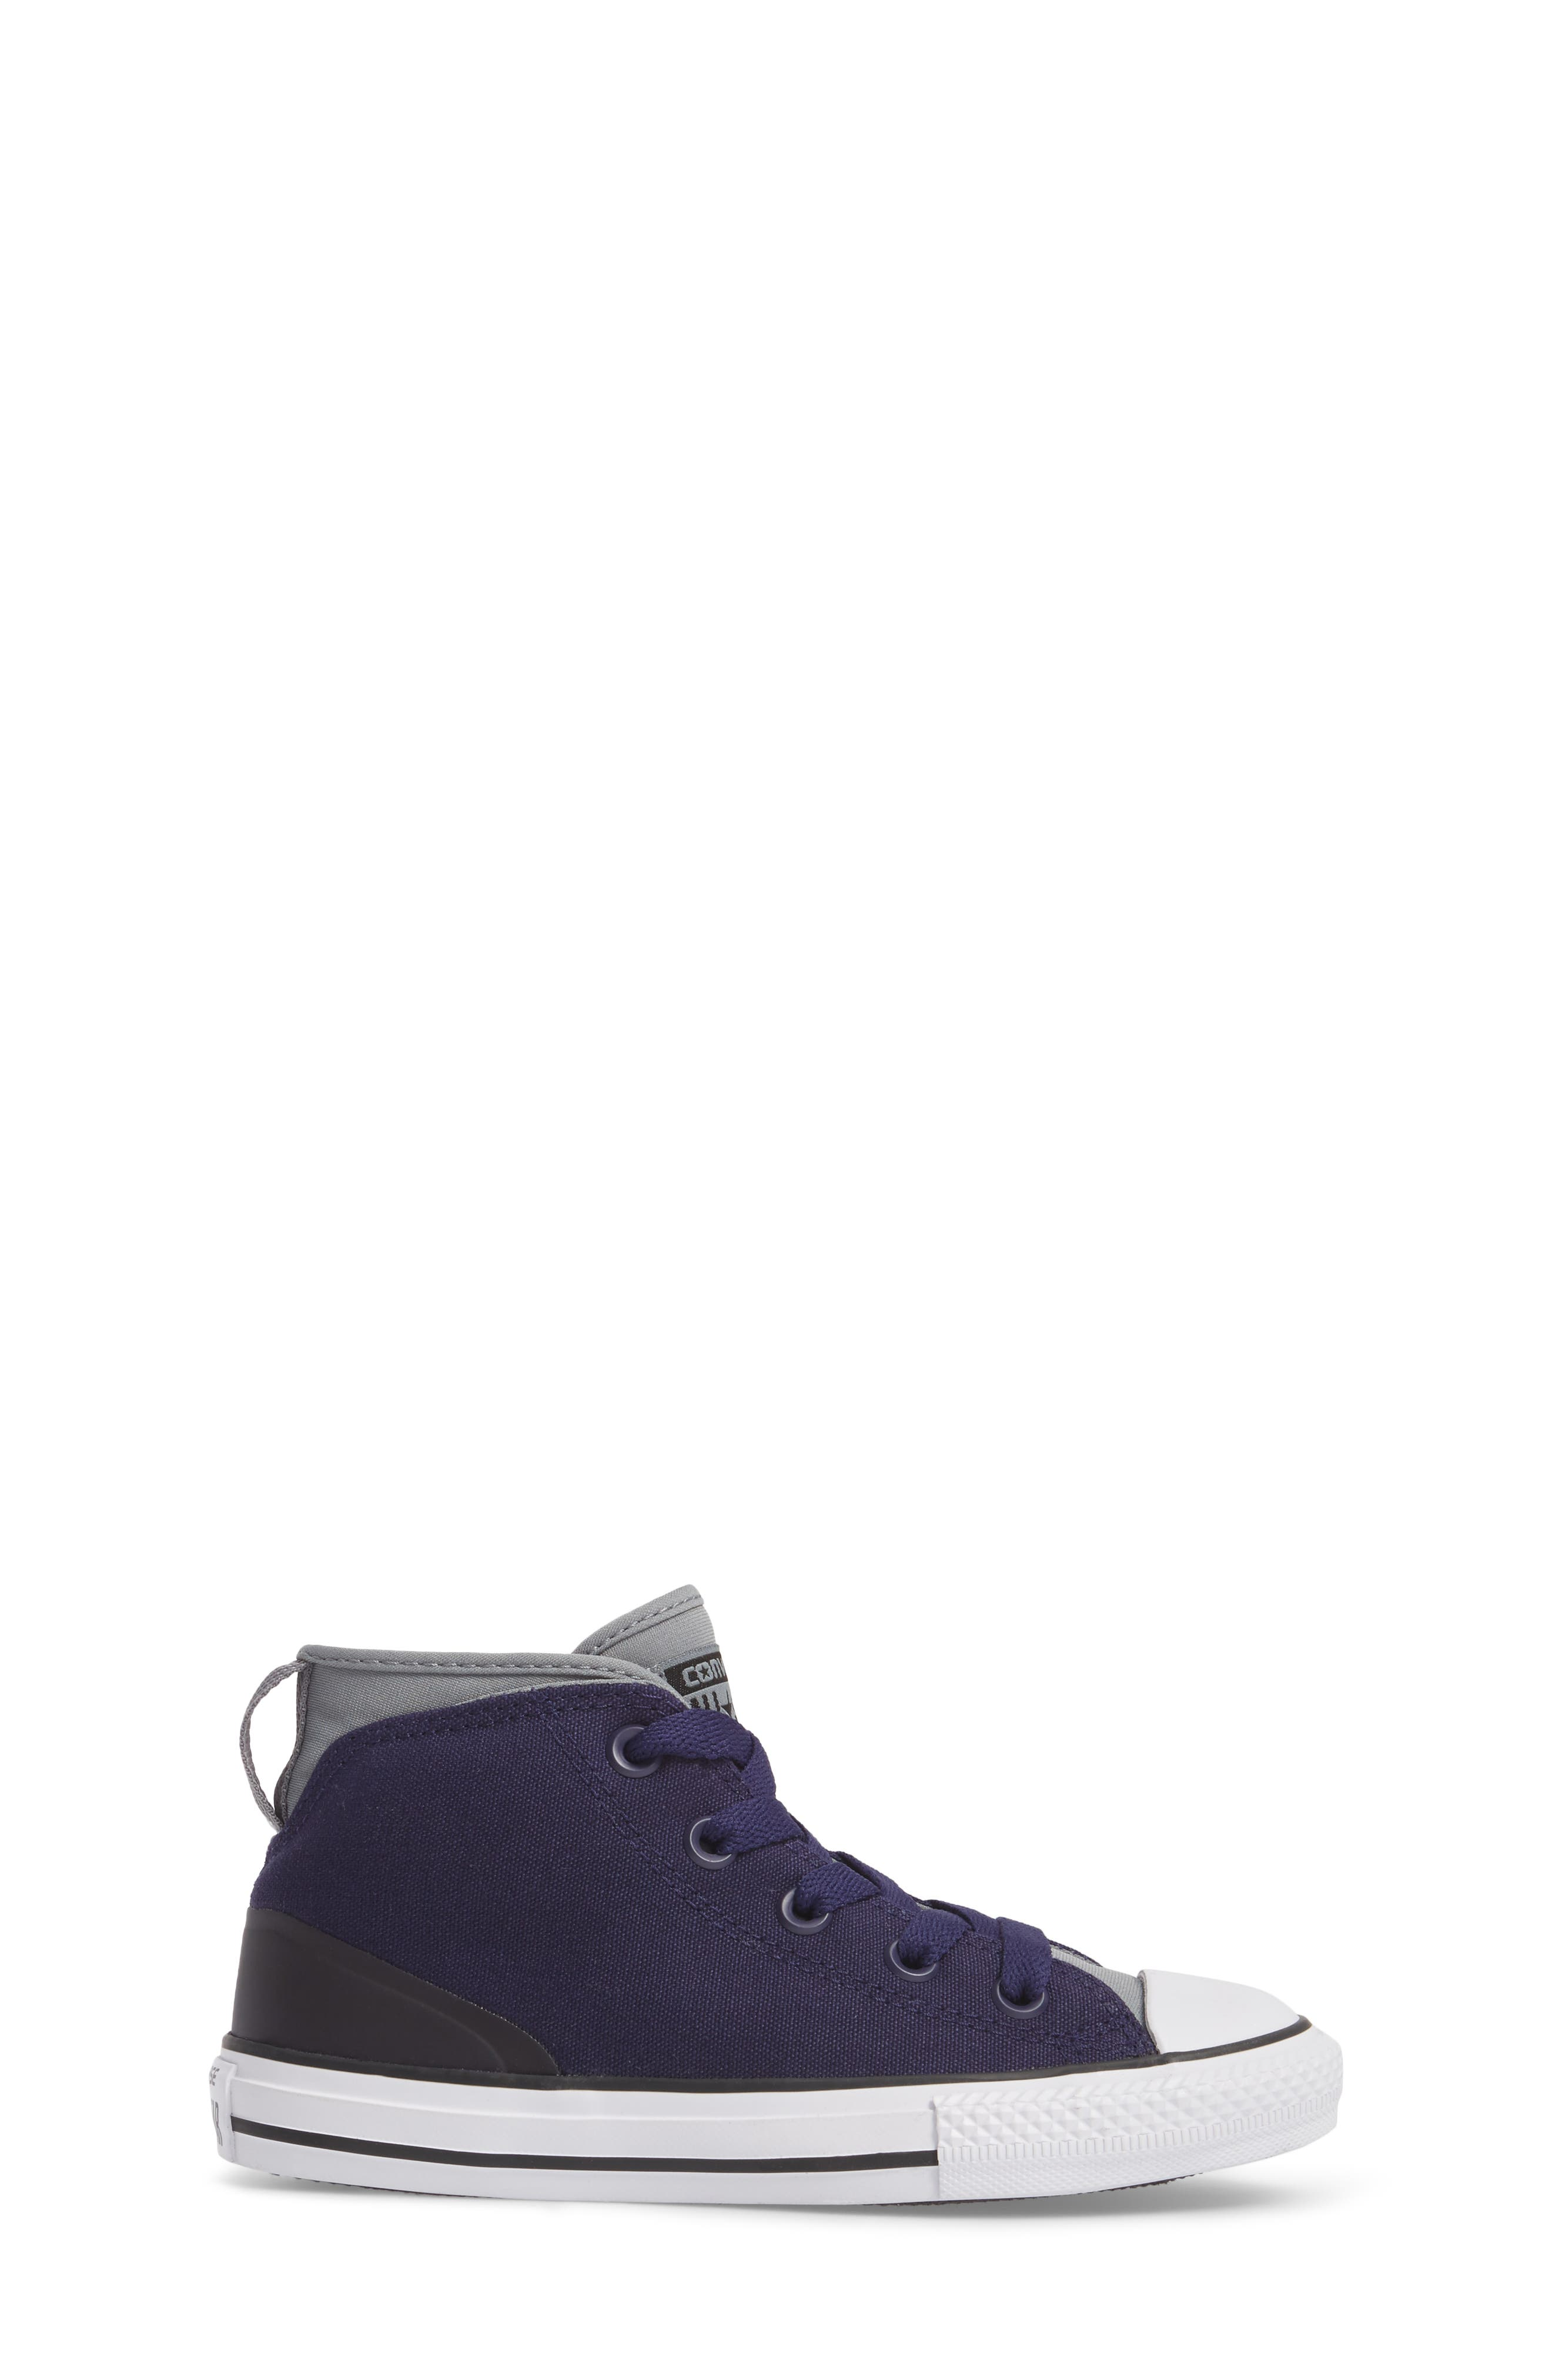 Chuck Taylor<sup>®</sup> All Star<sup>®</sup> Syde Street High Top Sneaker,                             Alternate thumbnail 3, color,                             Midnight Canvas